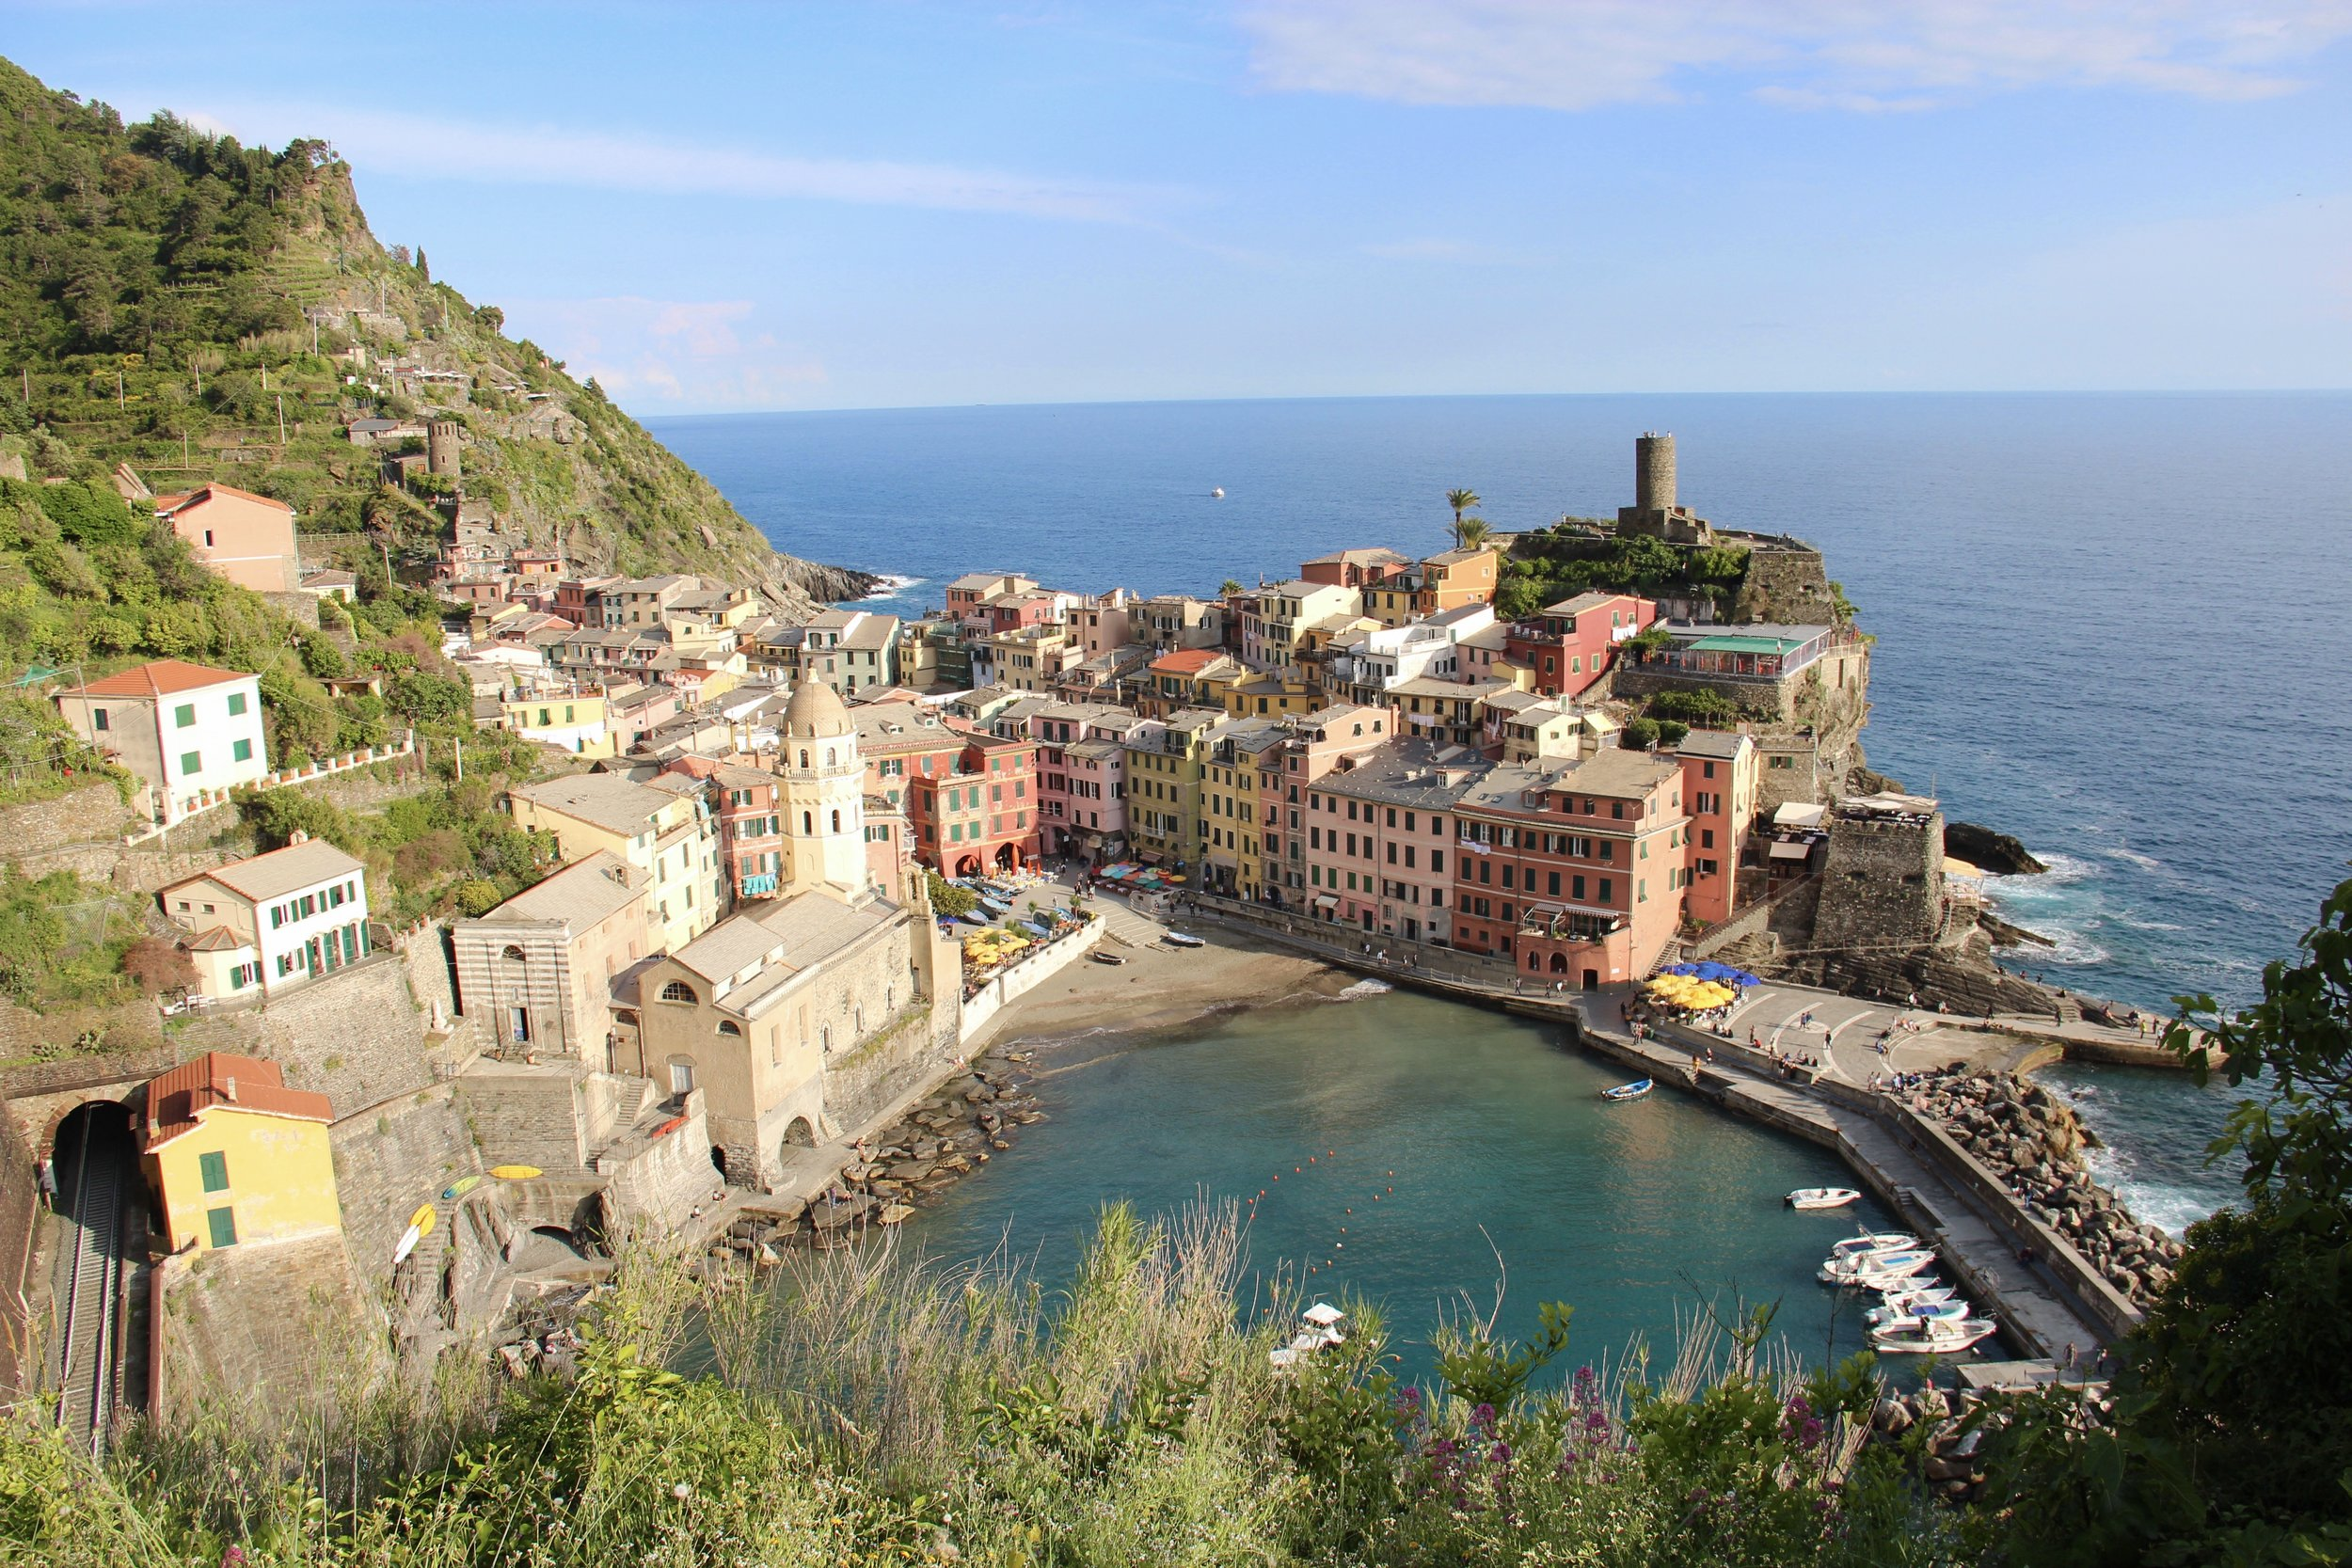 The village of Vernazza.